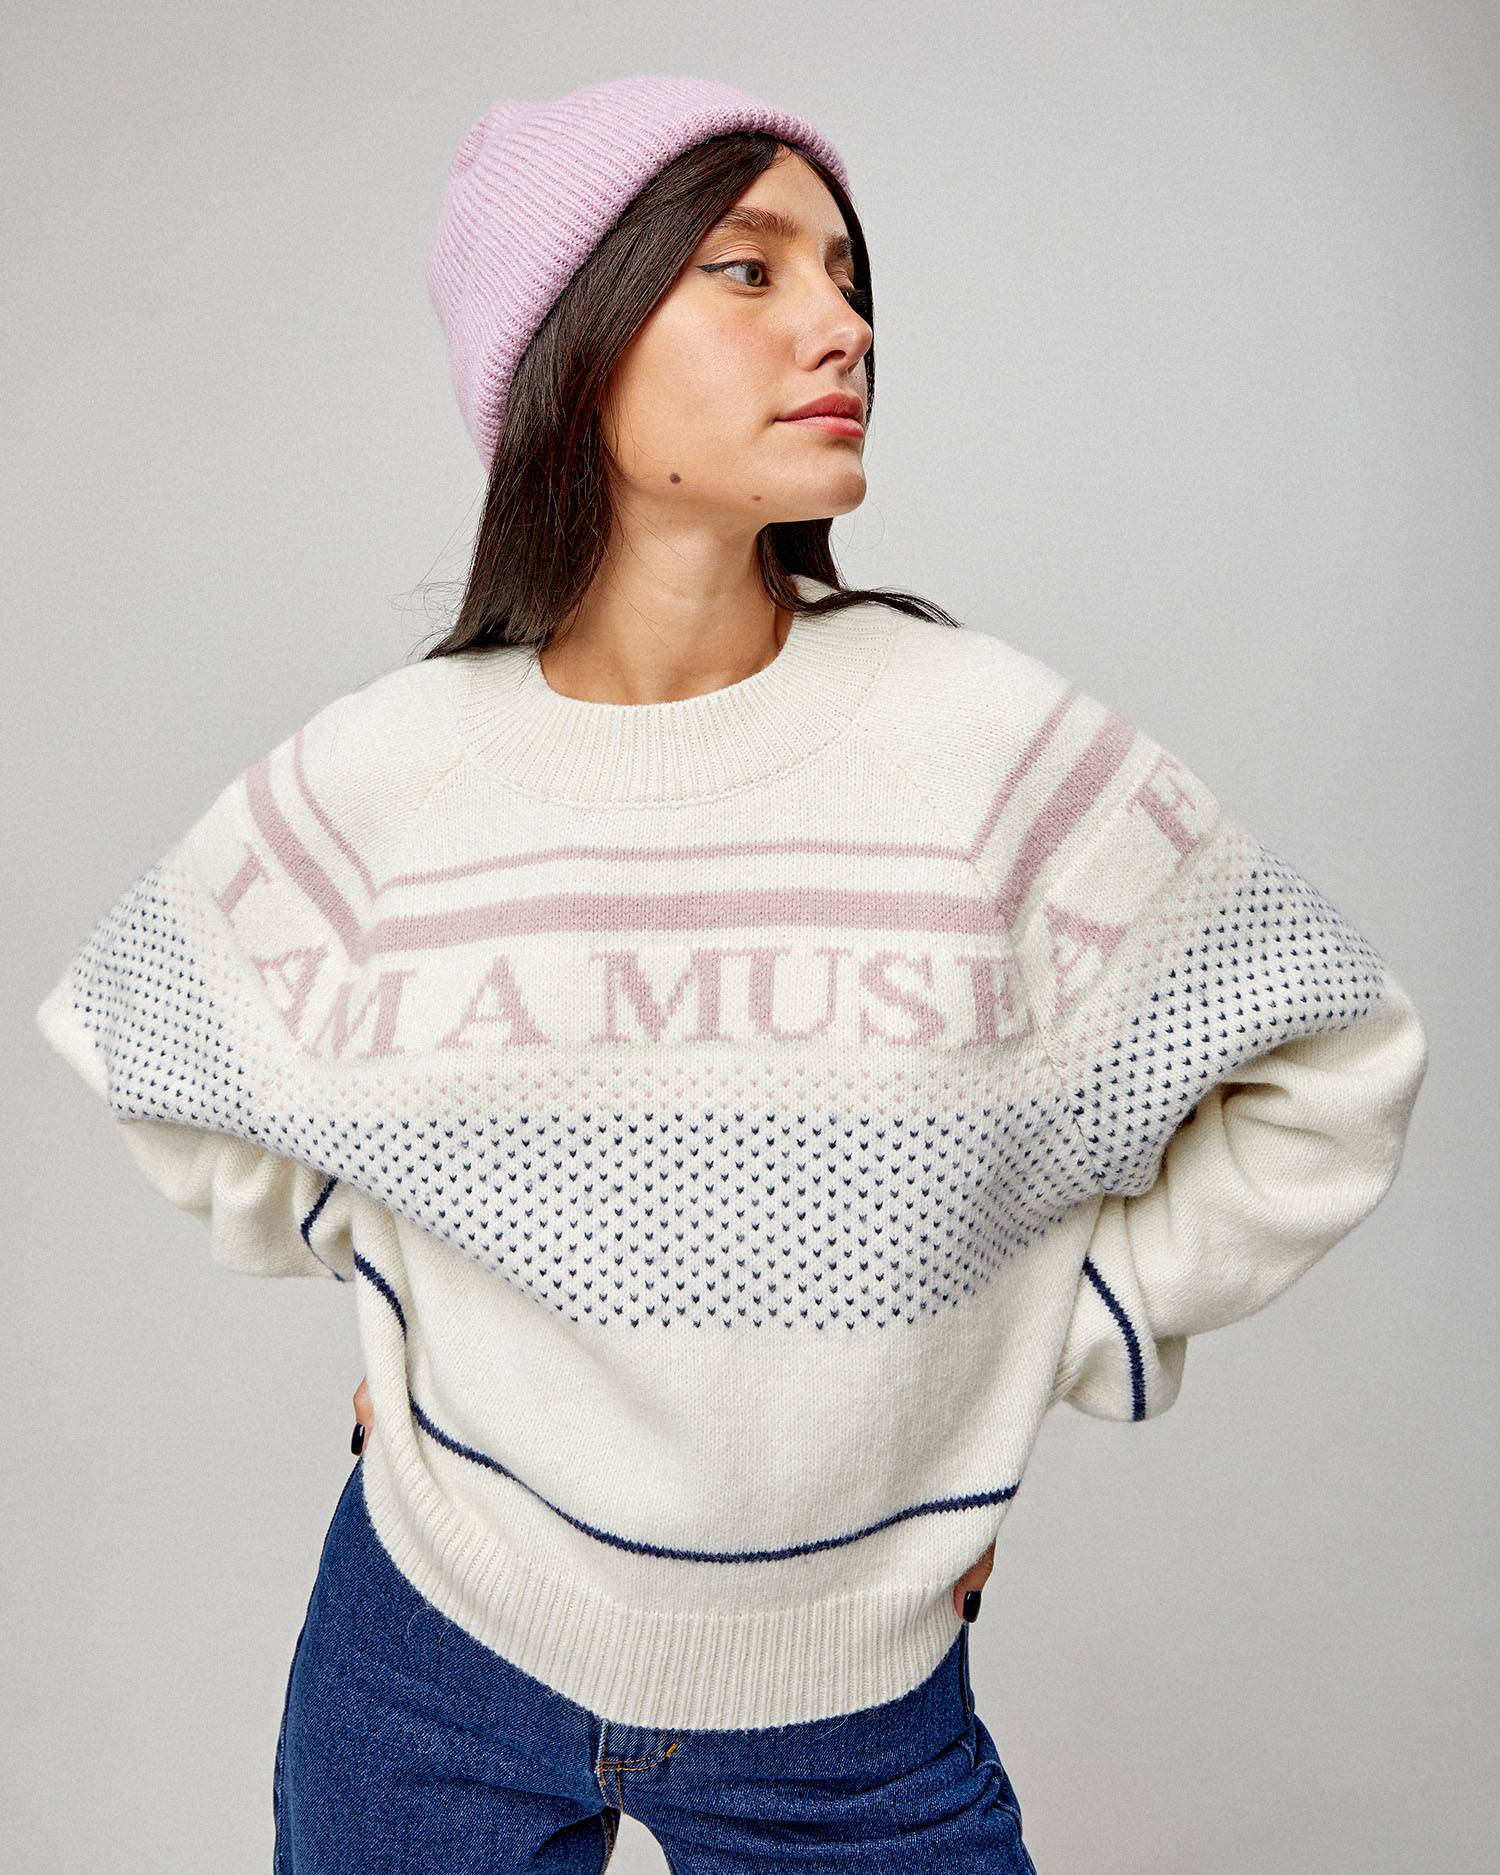 I Am A Muse intarsia sweater